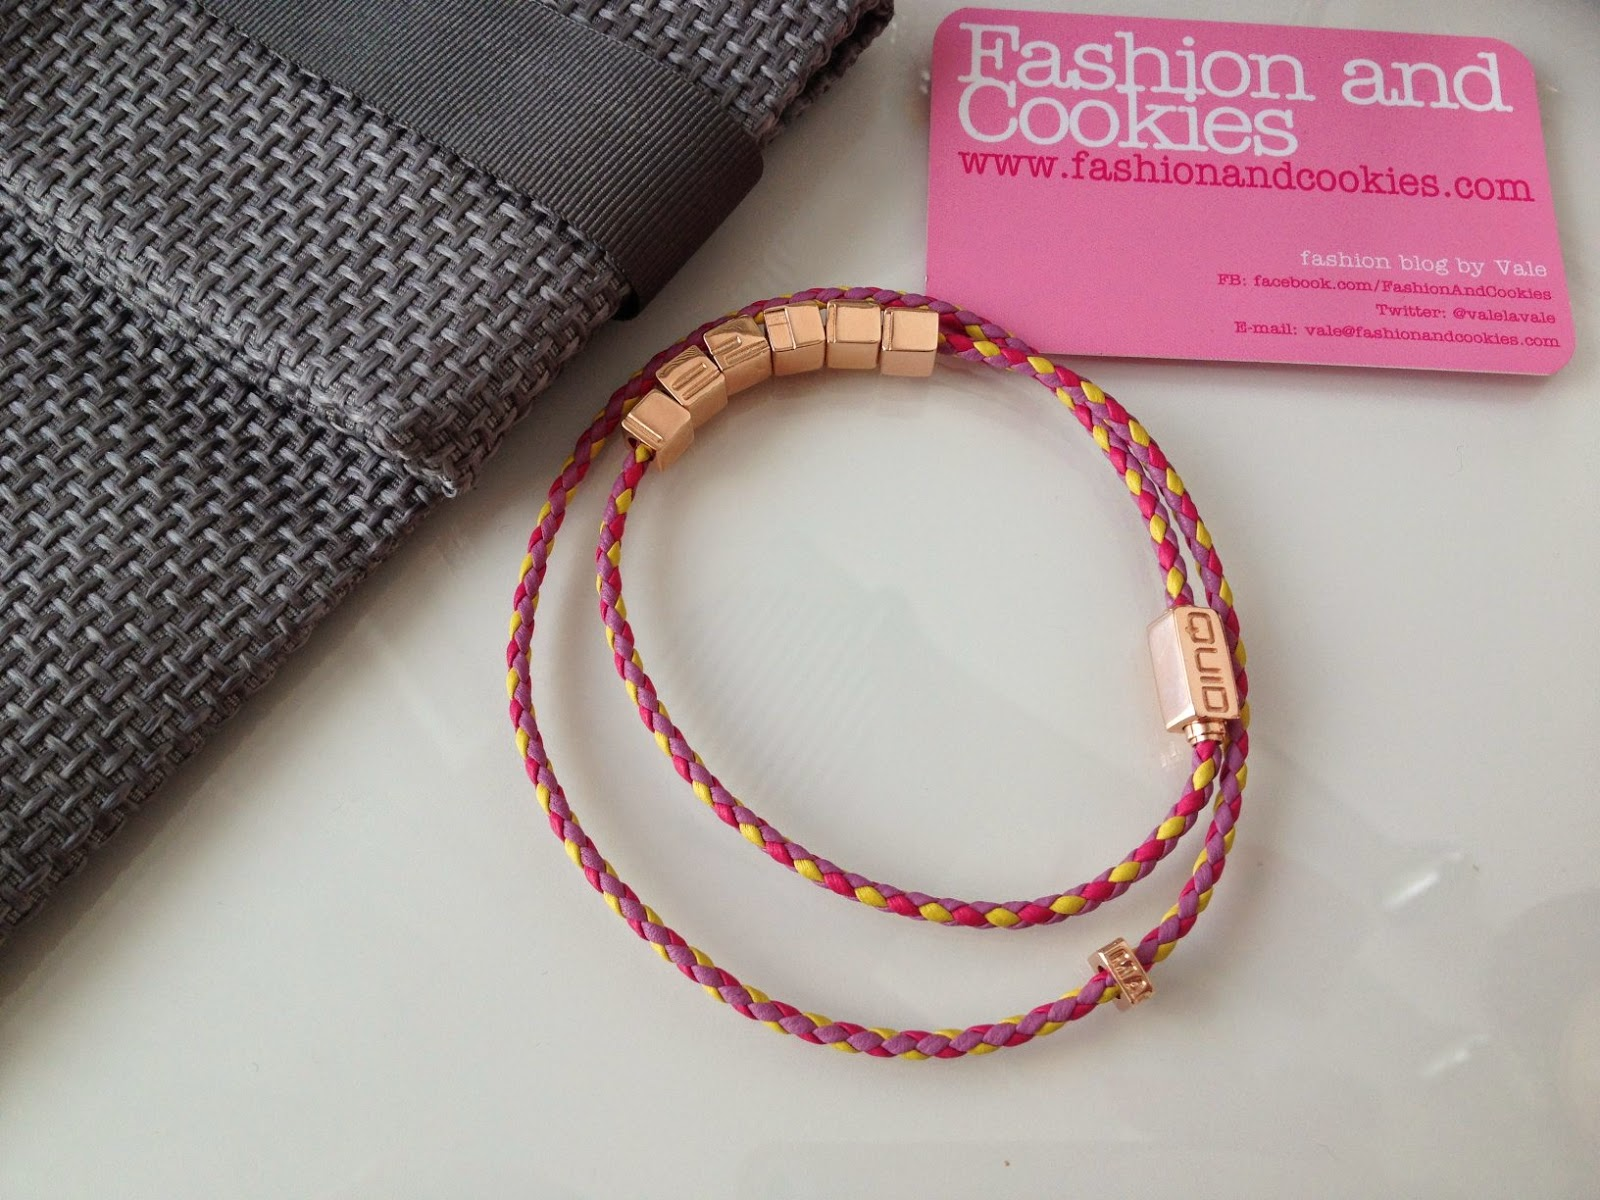 quid jewelry to remember, Fashion and Cookies, fashion blogger